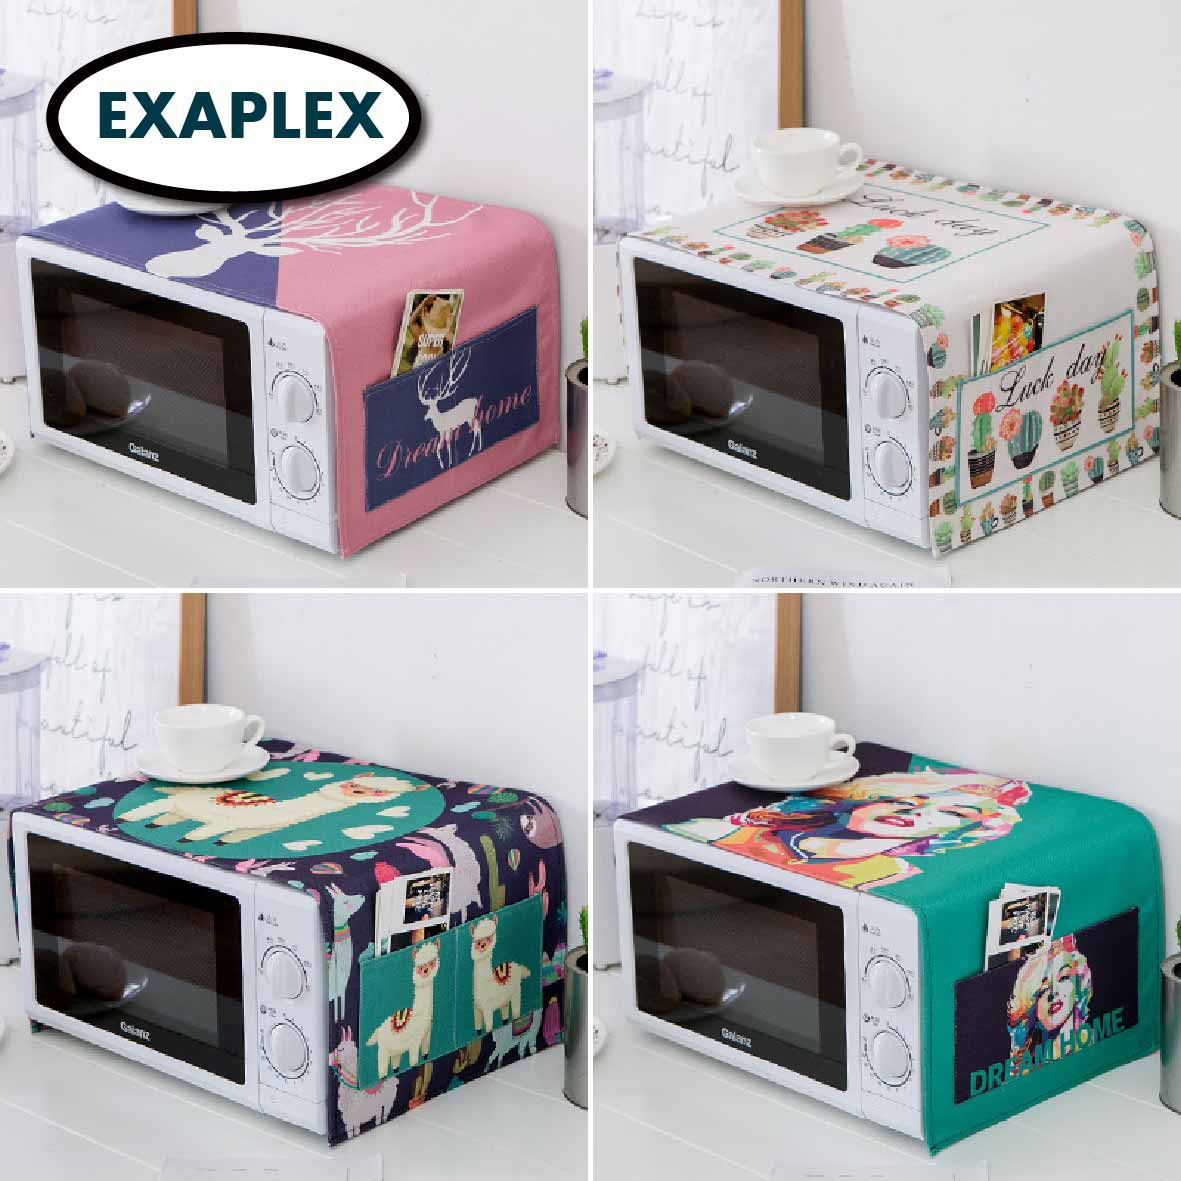 Dust Cover Microwave Oven Home Refrigerator Washing Machine Coloourful Palm Chinese Style Japanese Modern Design